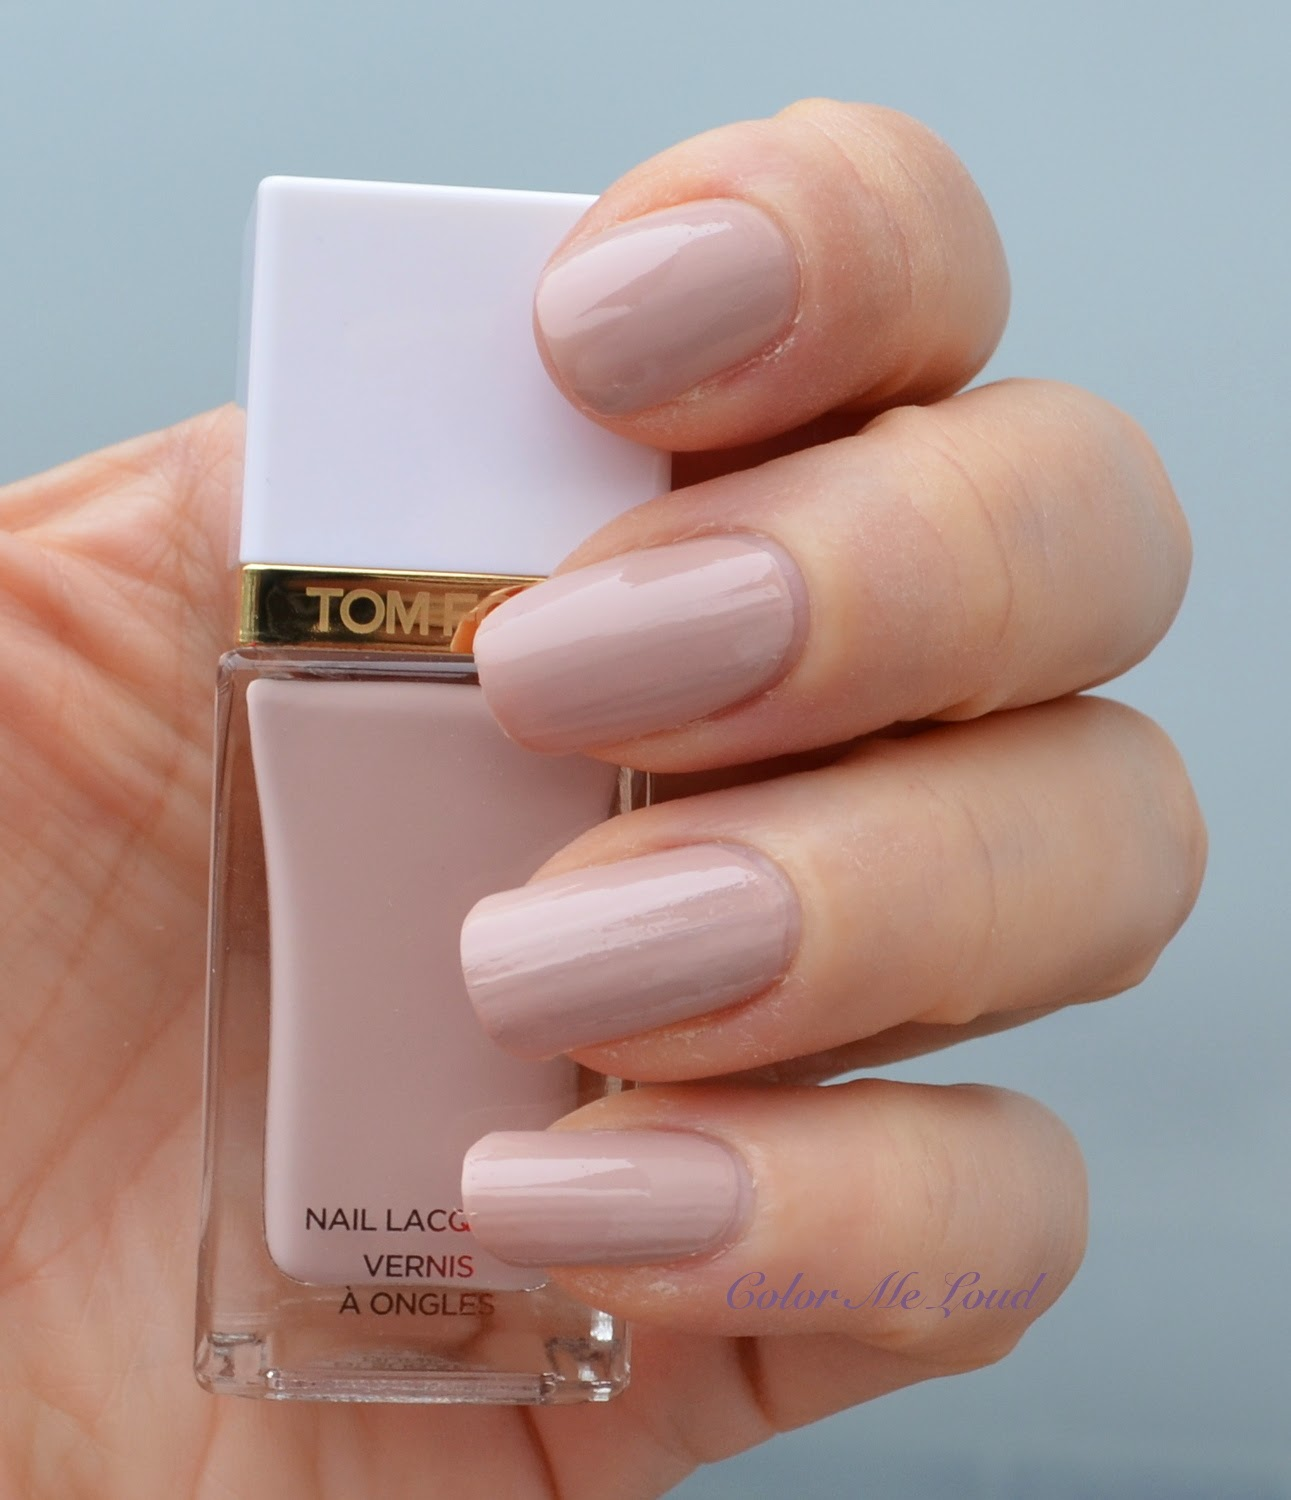 Tom Ford Nail Lacquer #01 Sugar Dune, #02 Incandescent, #03 Coral ...